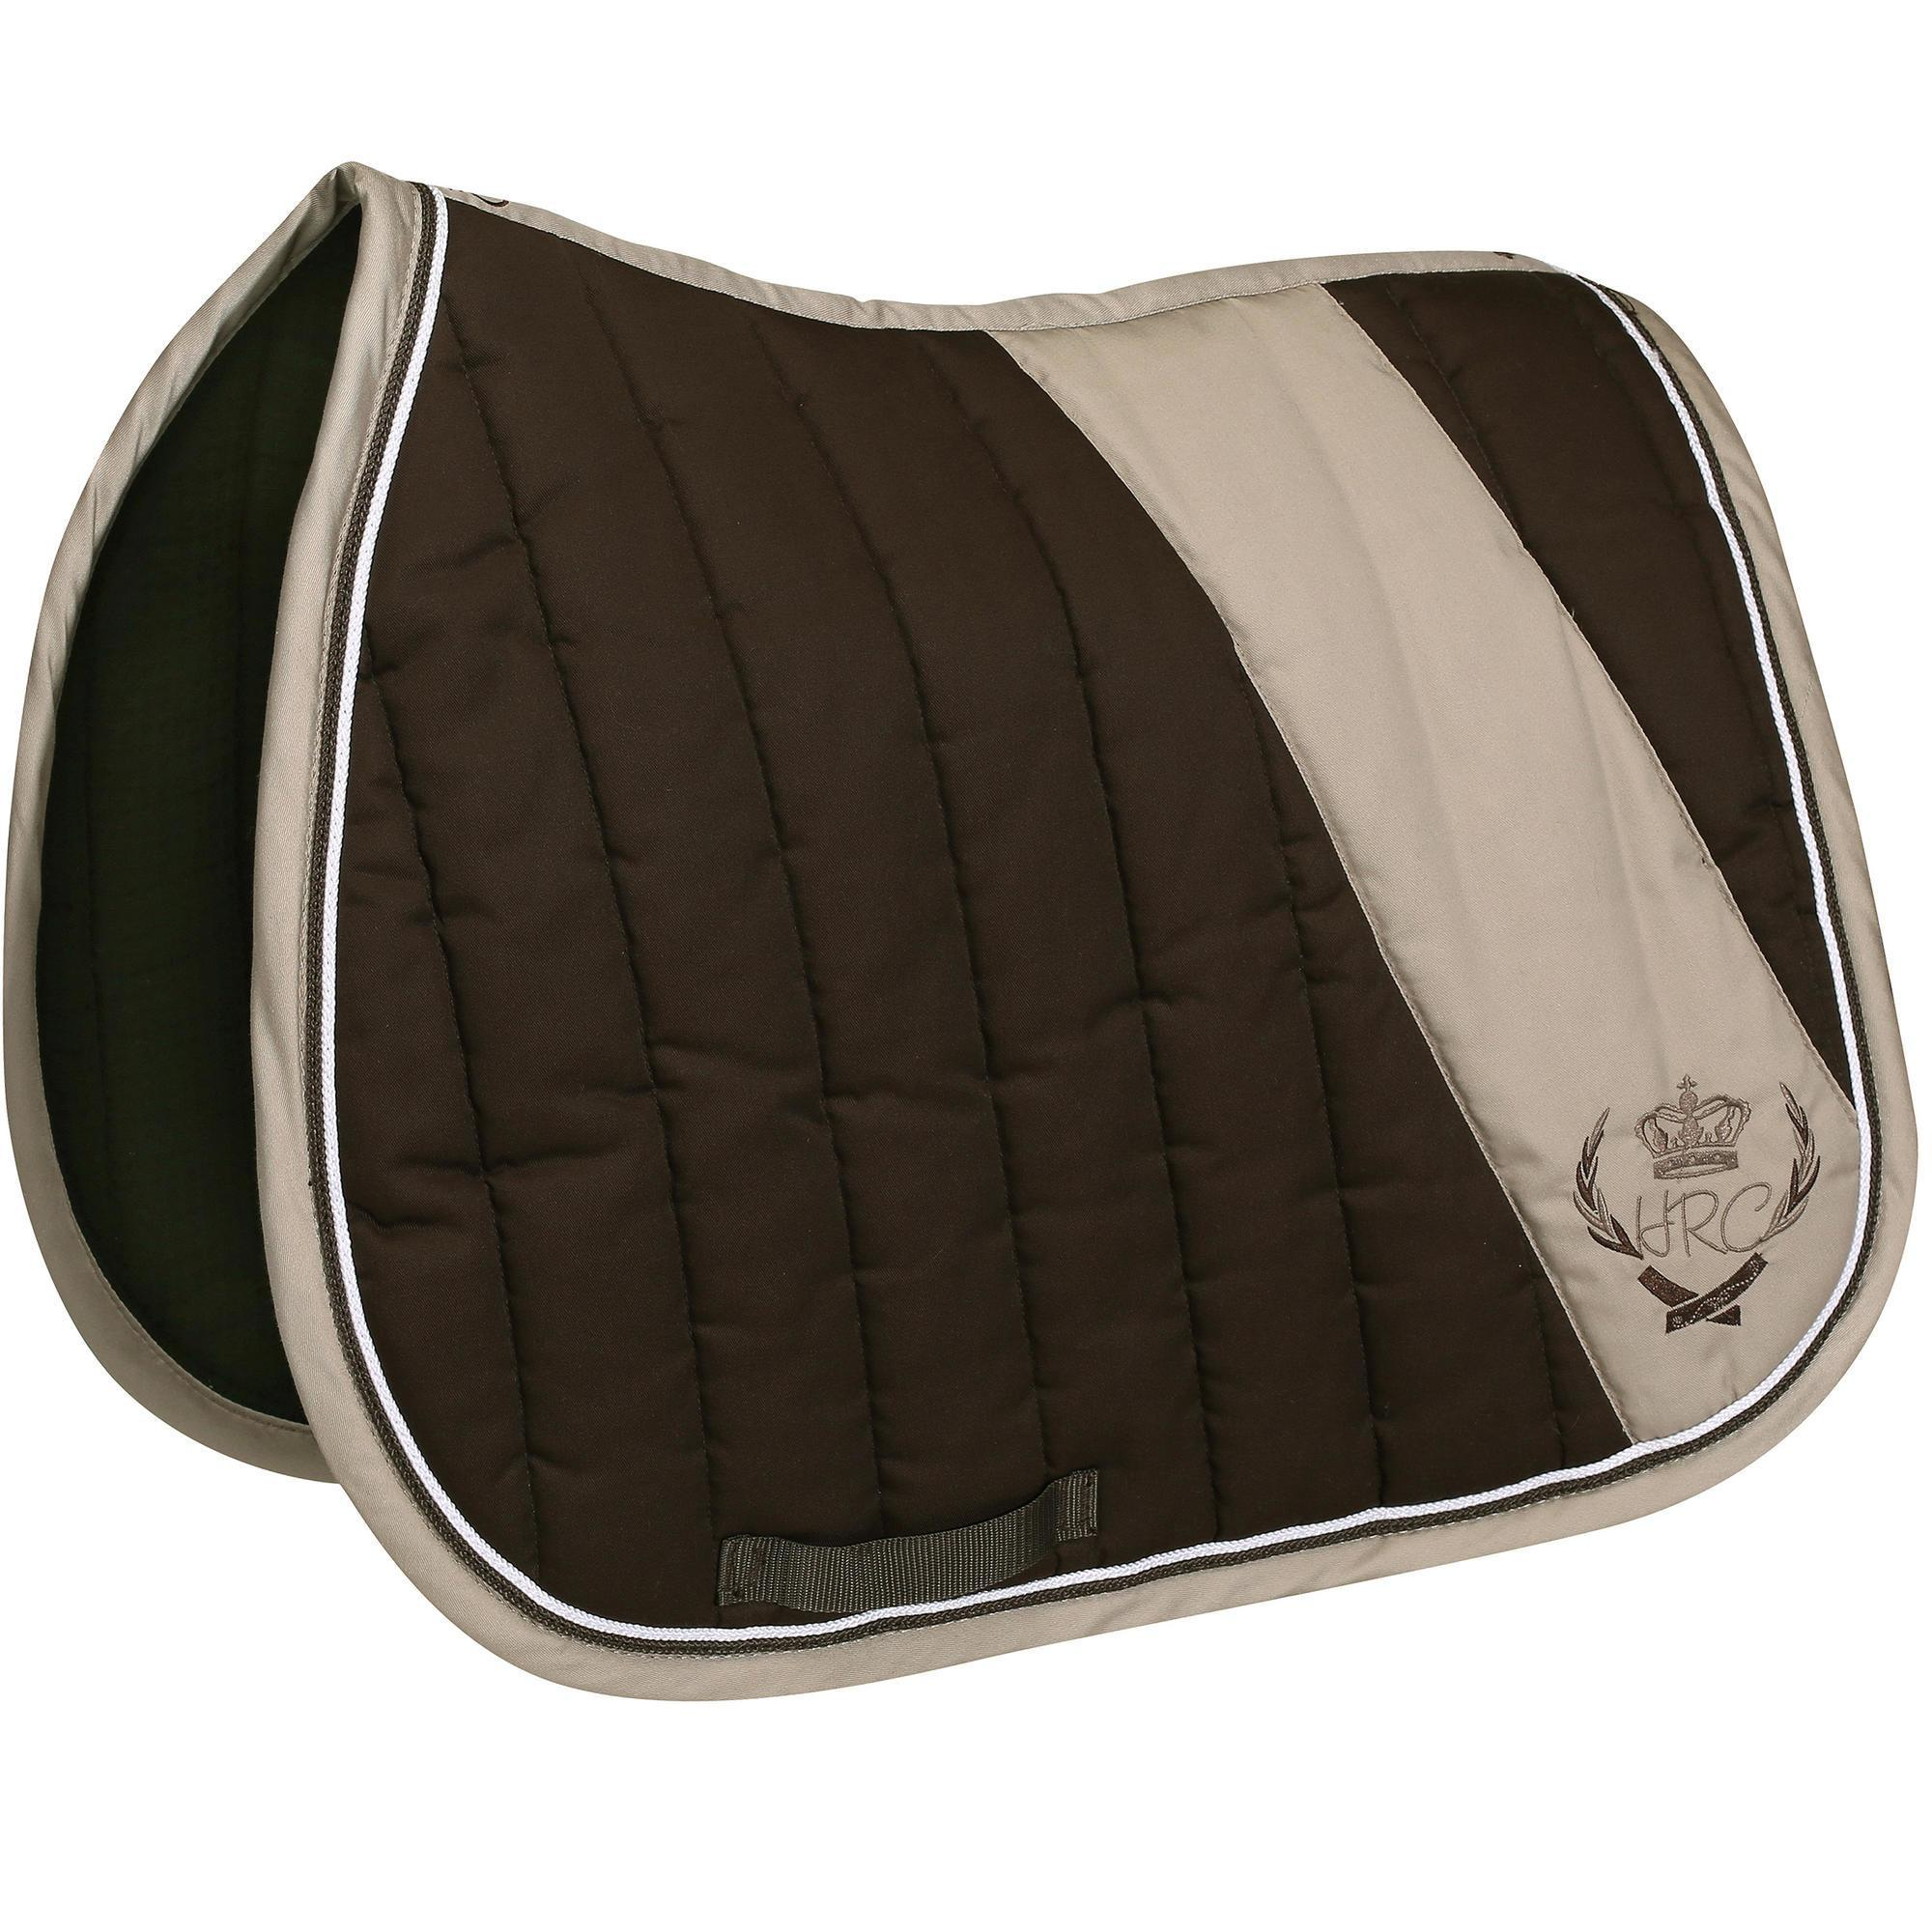 Tapis de selle quitation cheval jump marron beige fouganza - Decathlon equitation tapis ...